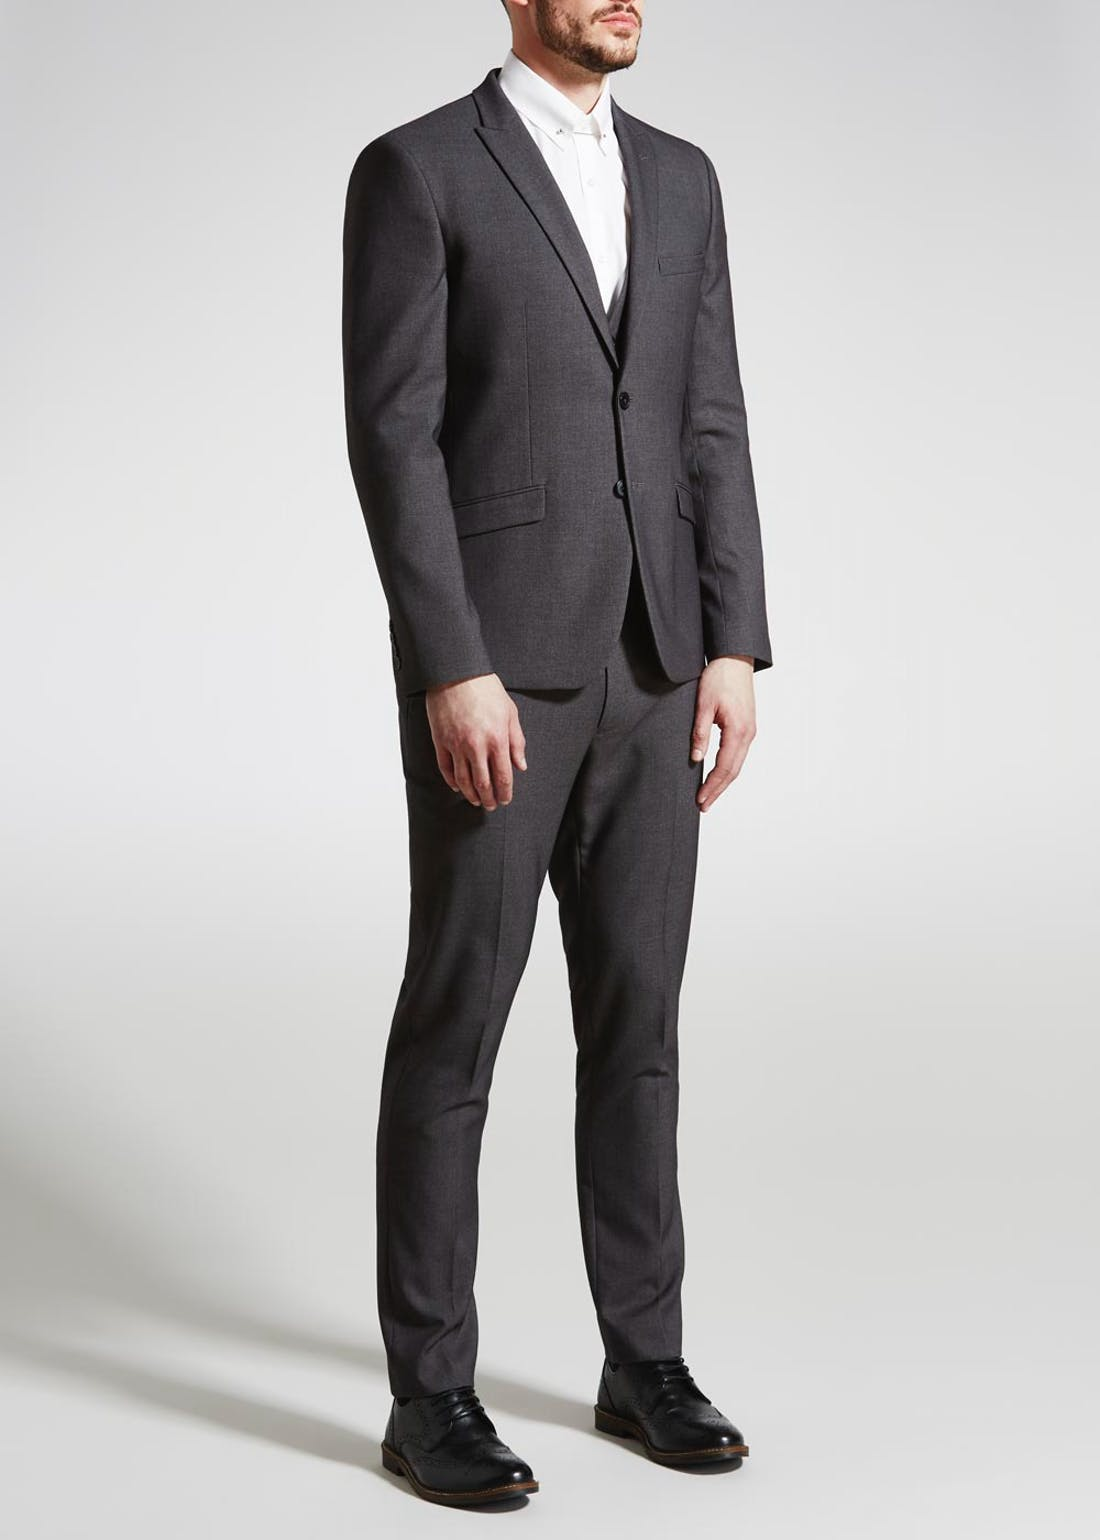 Taylor & Wright Metcalfe Skinny Fit Suit Jacket